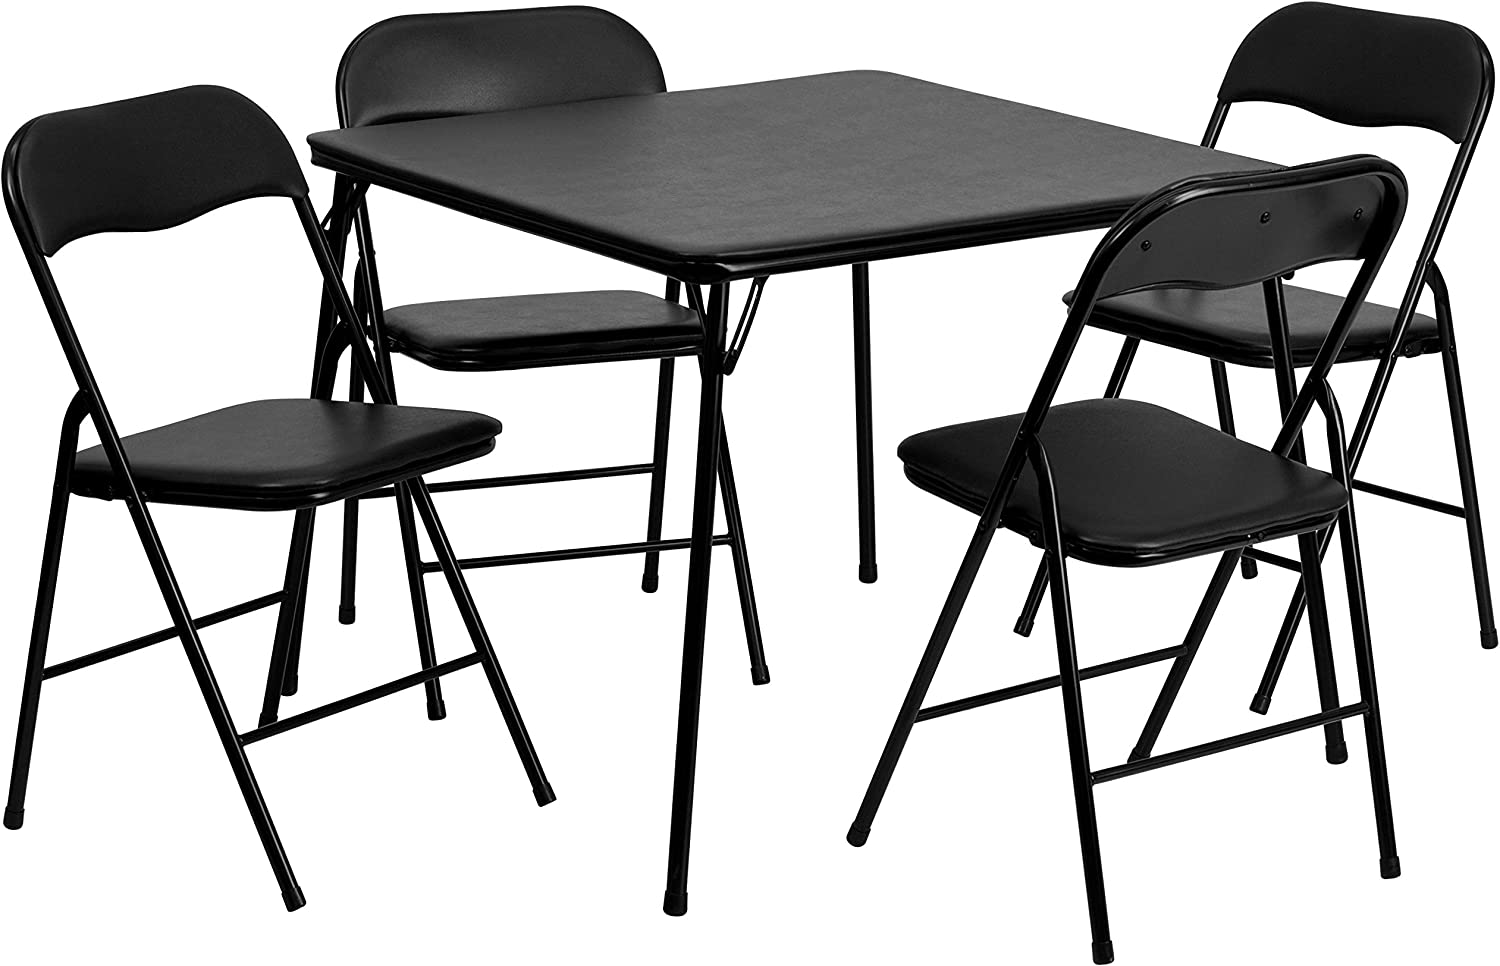 Flash Furniture 5 Piece Black Folding Card Table and Chair Set - Table & Chair Sets